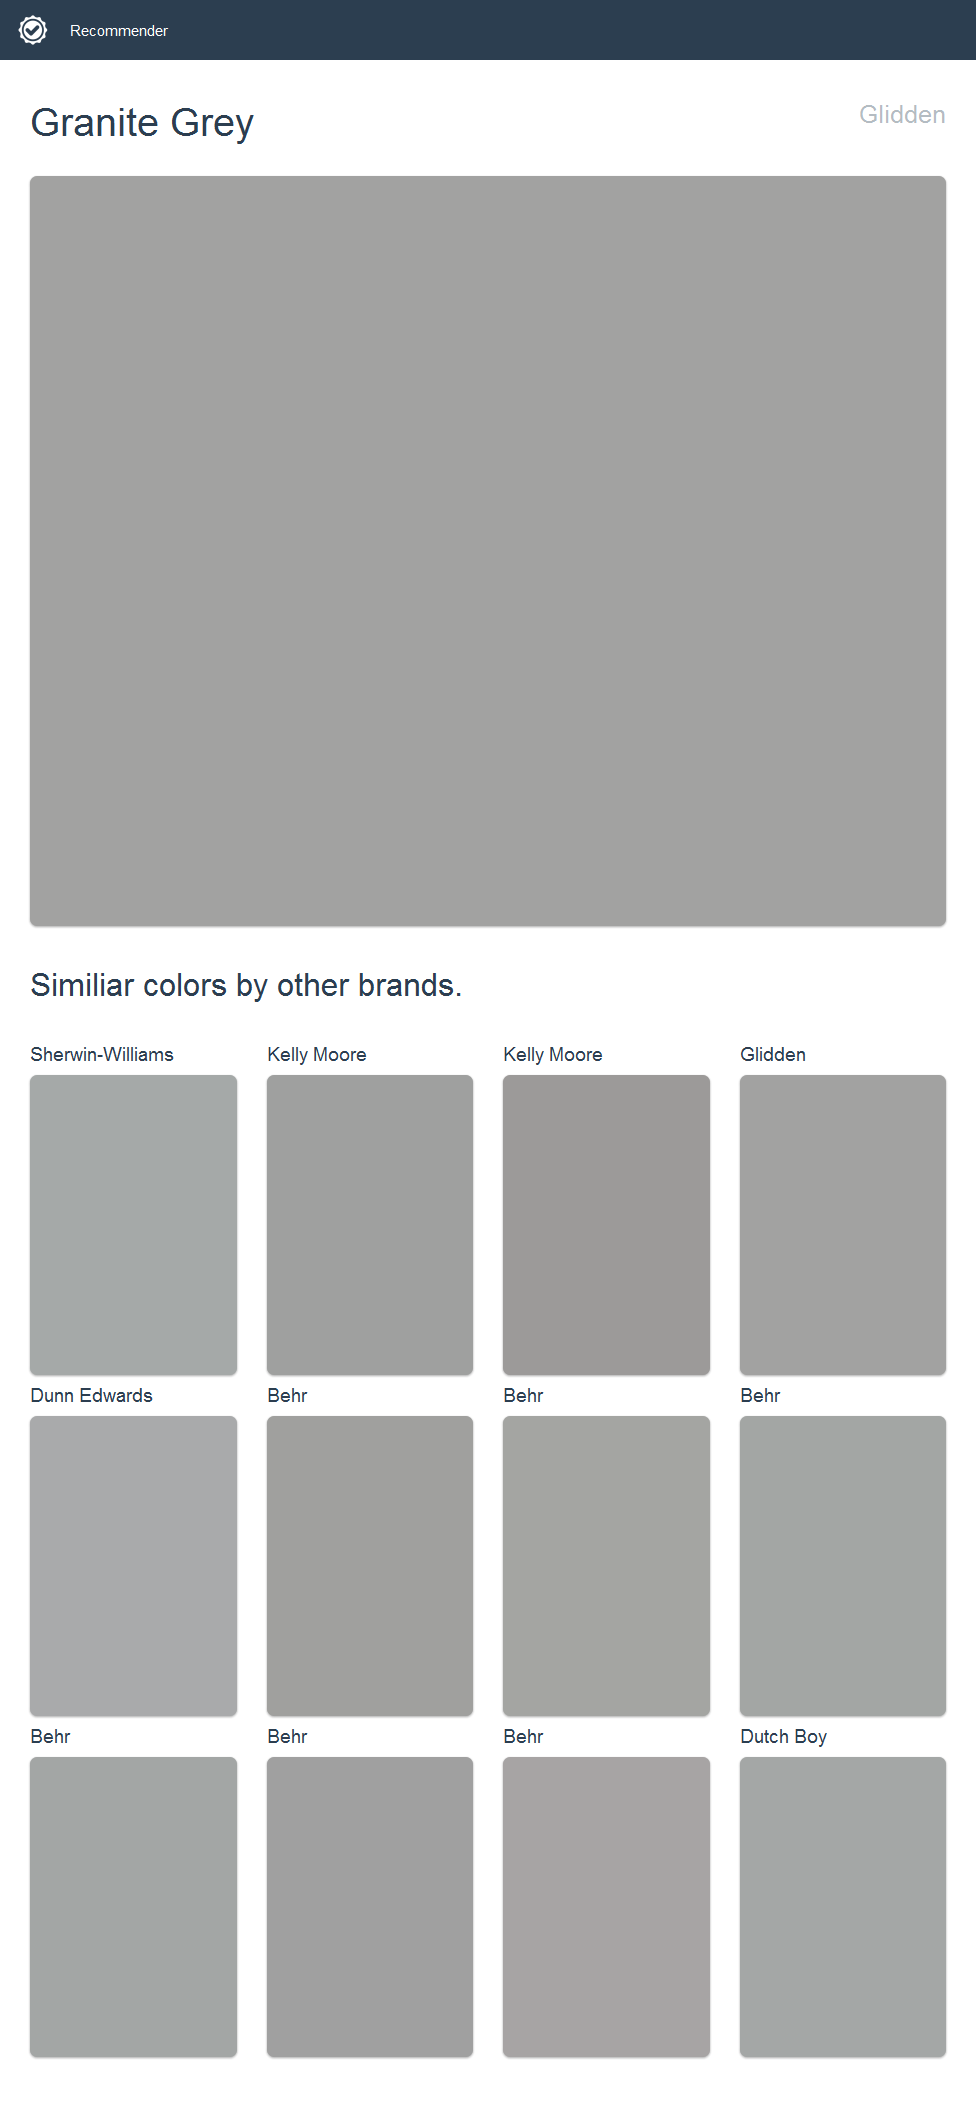 Granite Grey Paint >> Granite Grey Glidden Click The Image To See Similiar Colors By